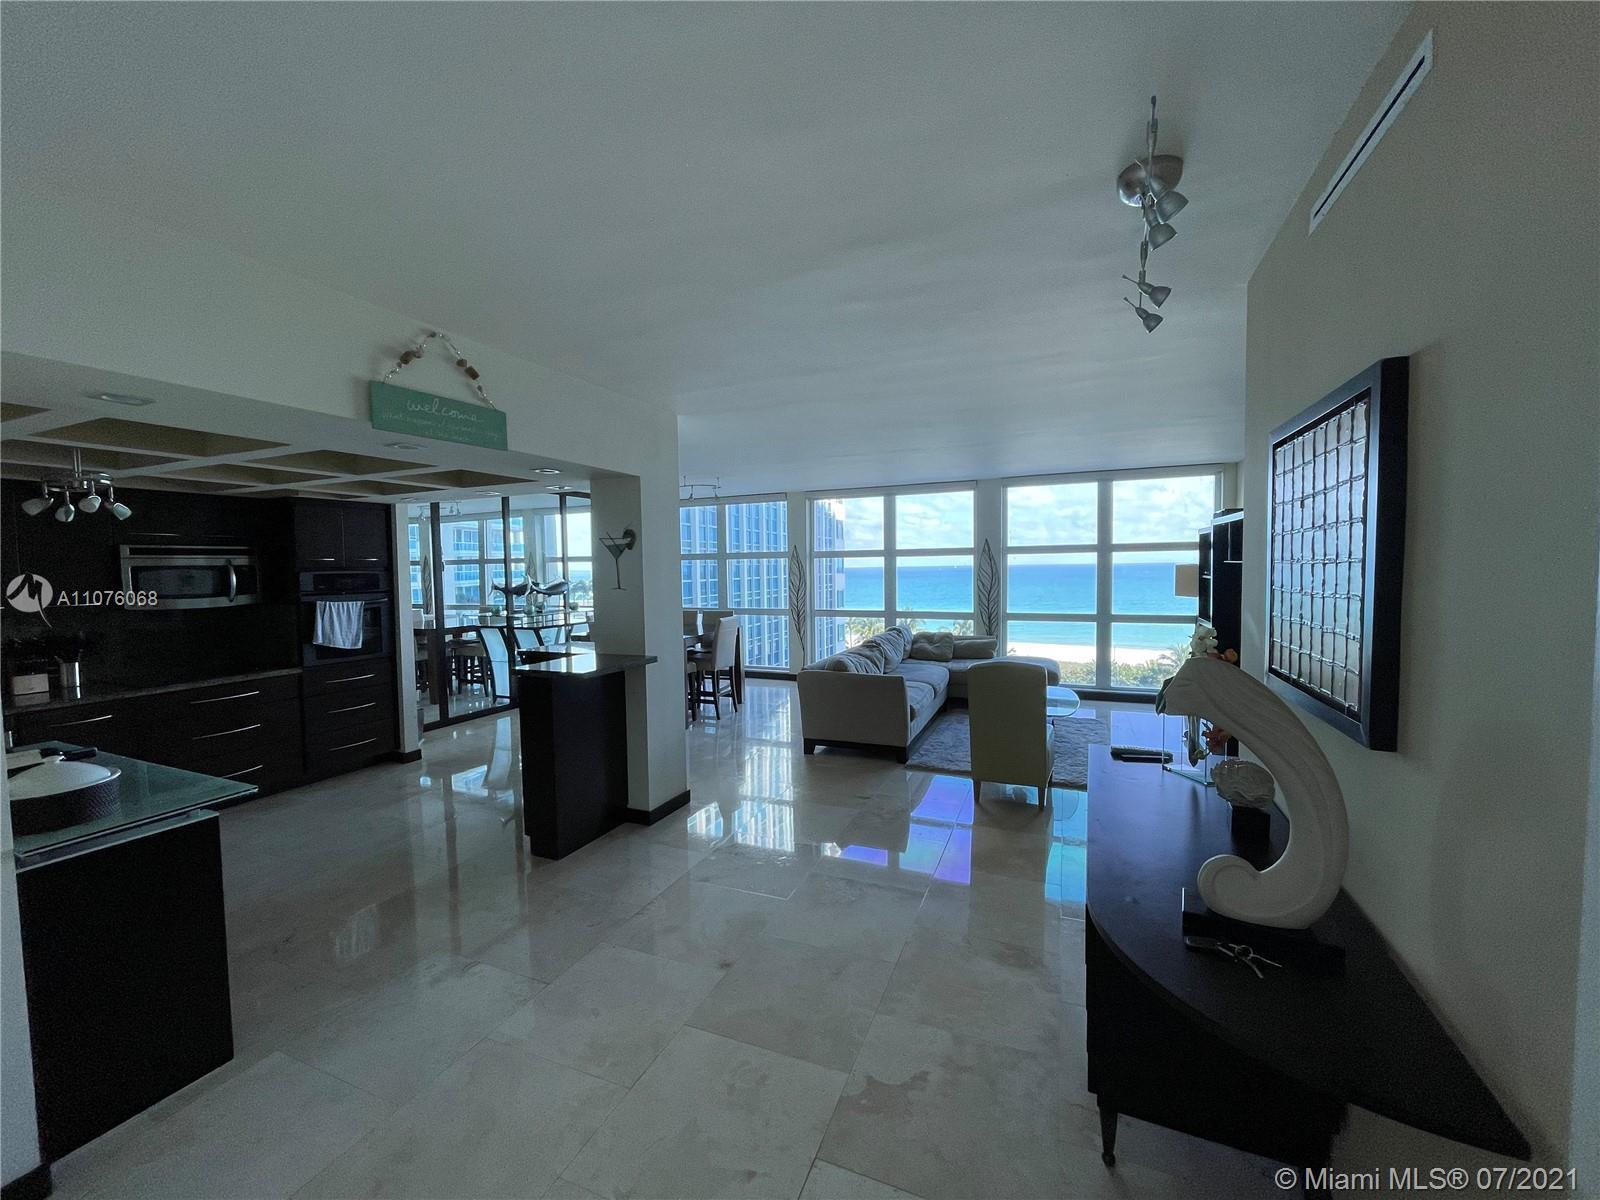 Fully remodeled corner 1 bedroom / 2bath unit with direct full ocean views !!! High ceilings with Fl